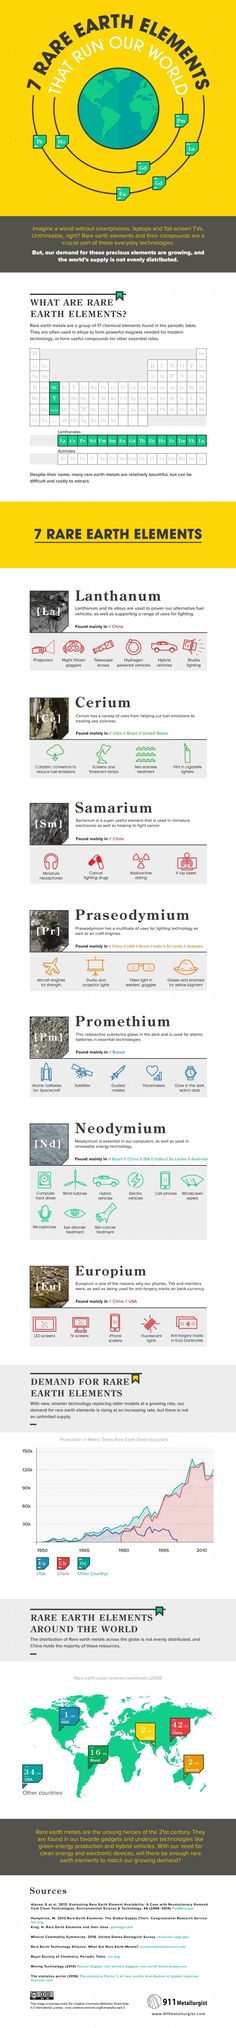 7 Rare Earth Elements That Power Our World #Infographic #Environment